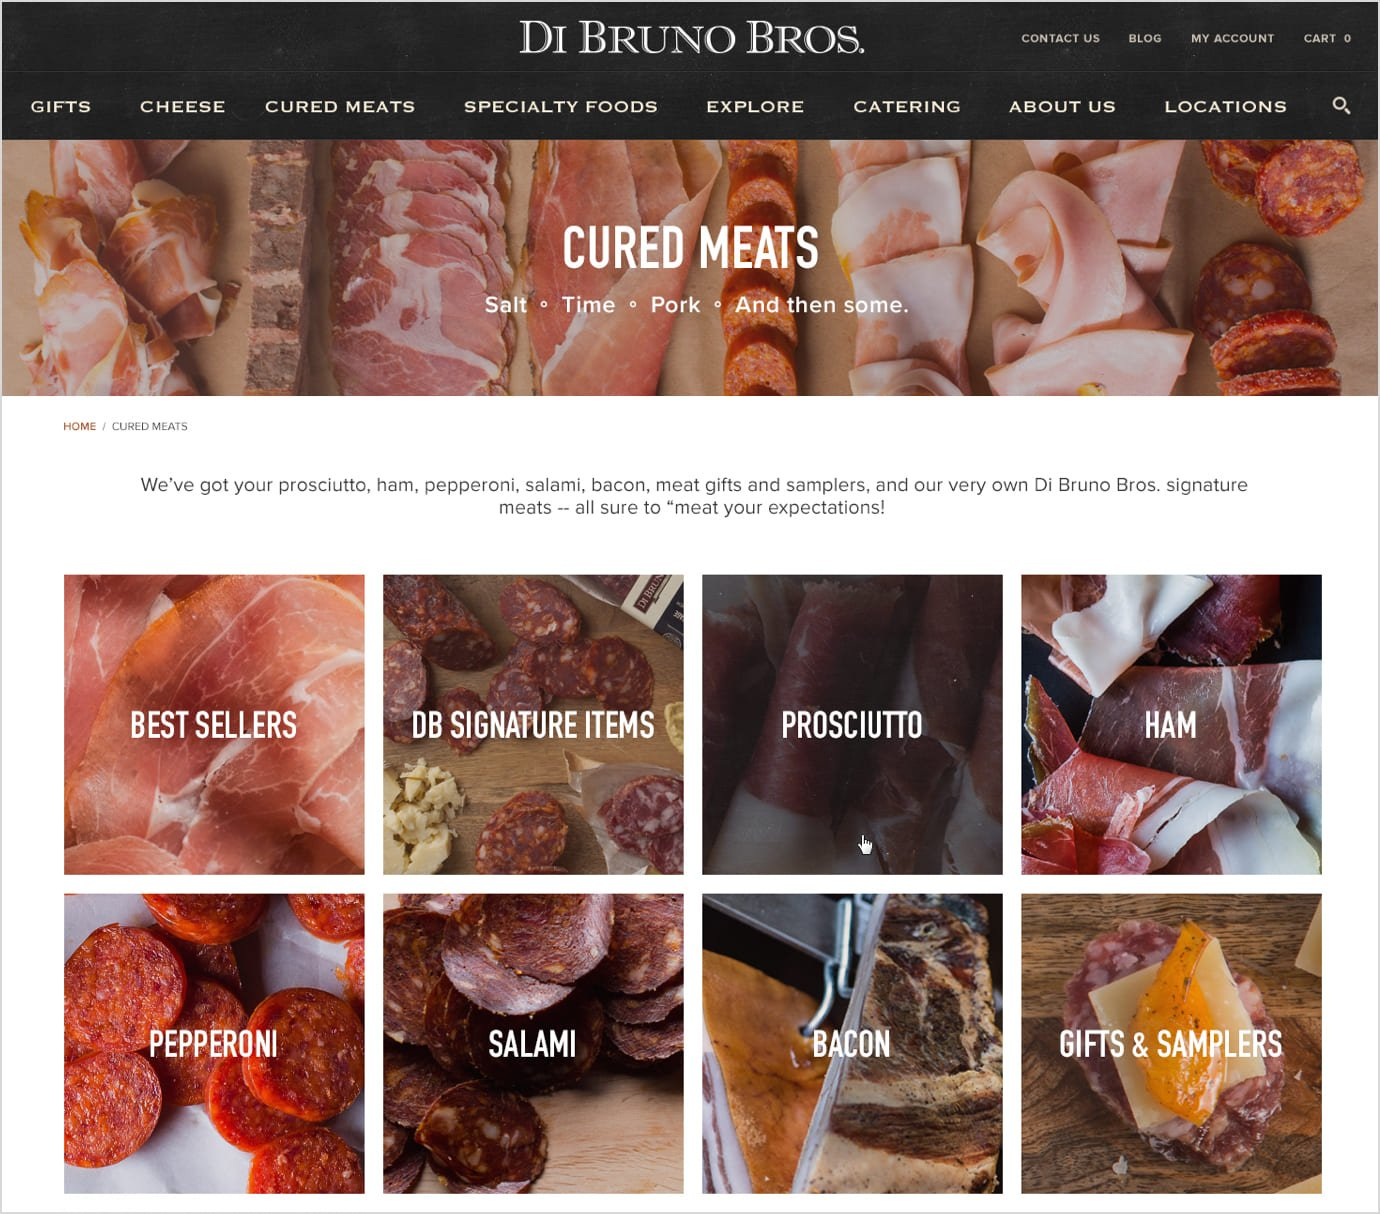 DiBruno Bros Category Page